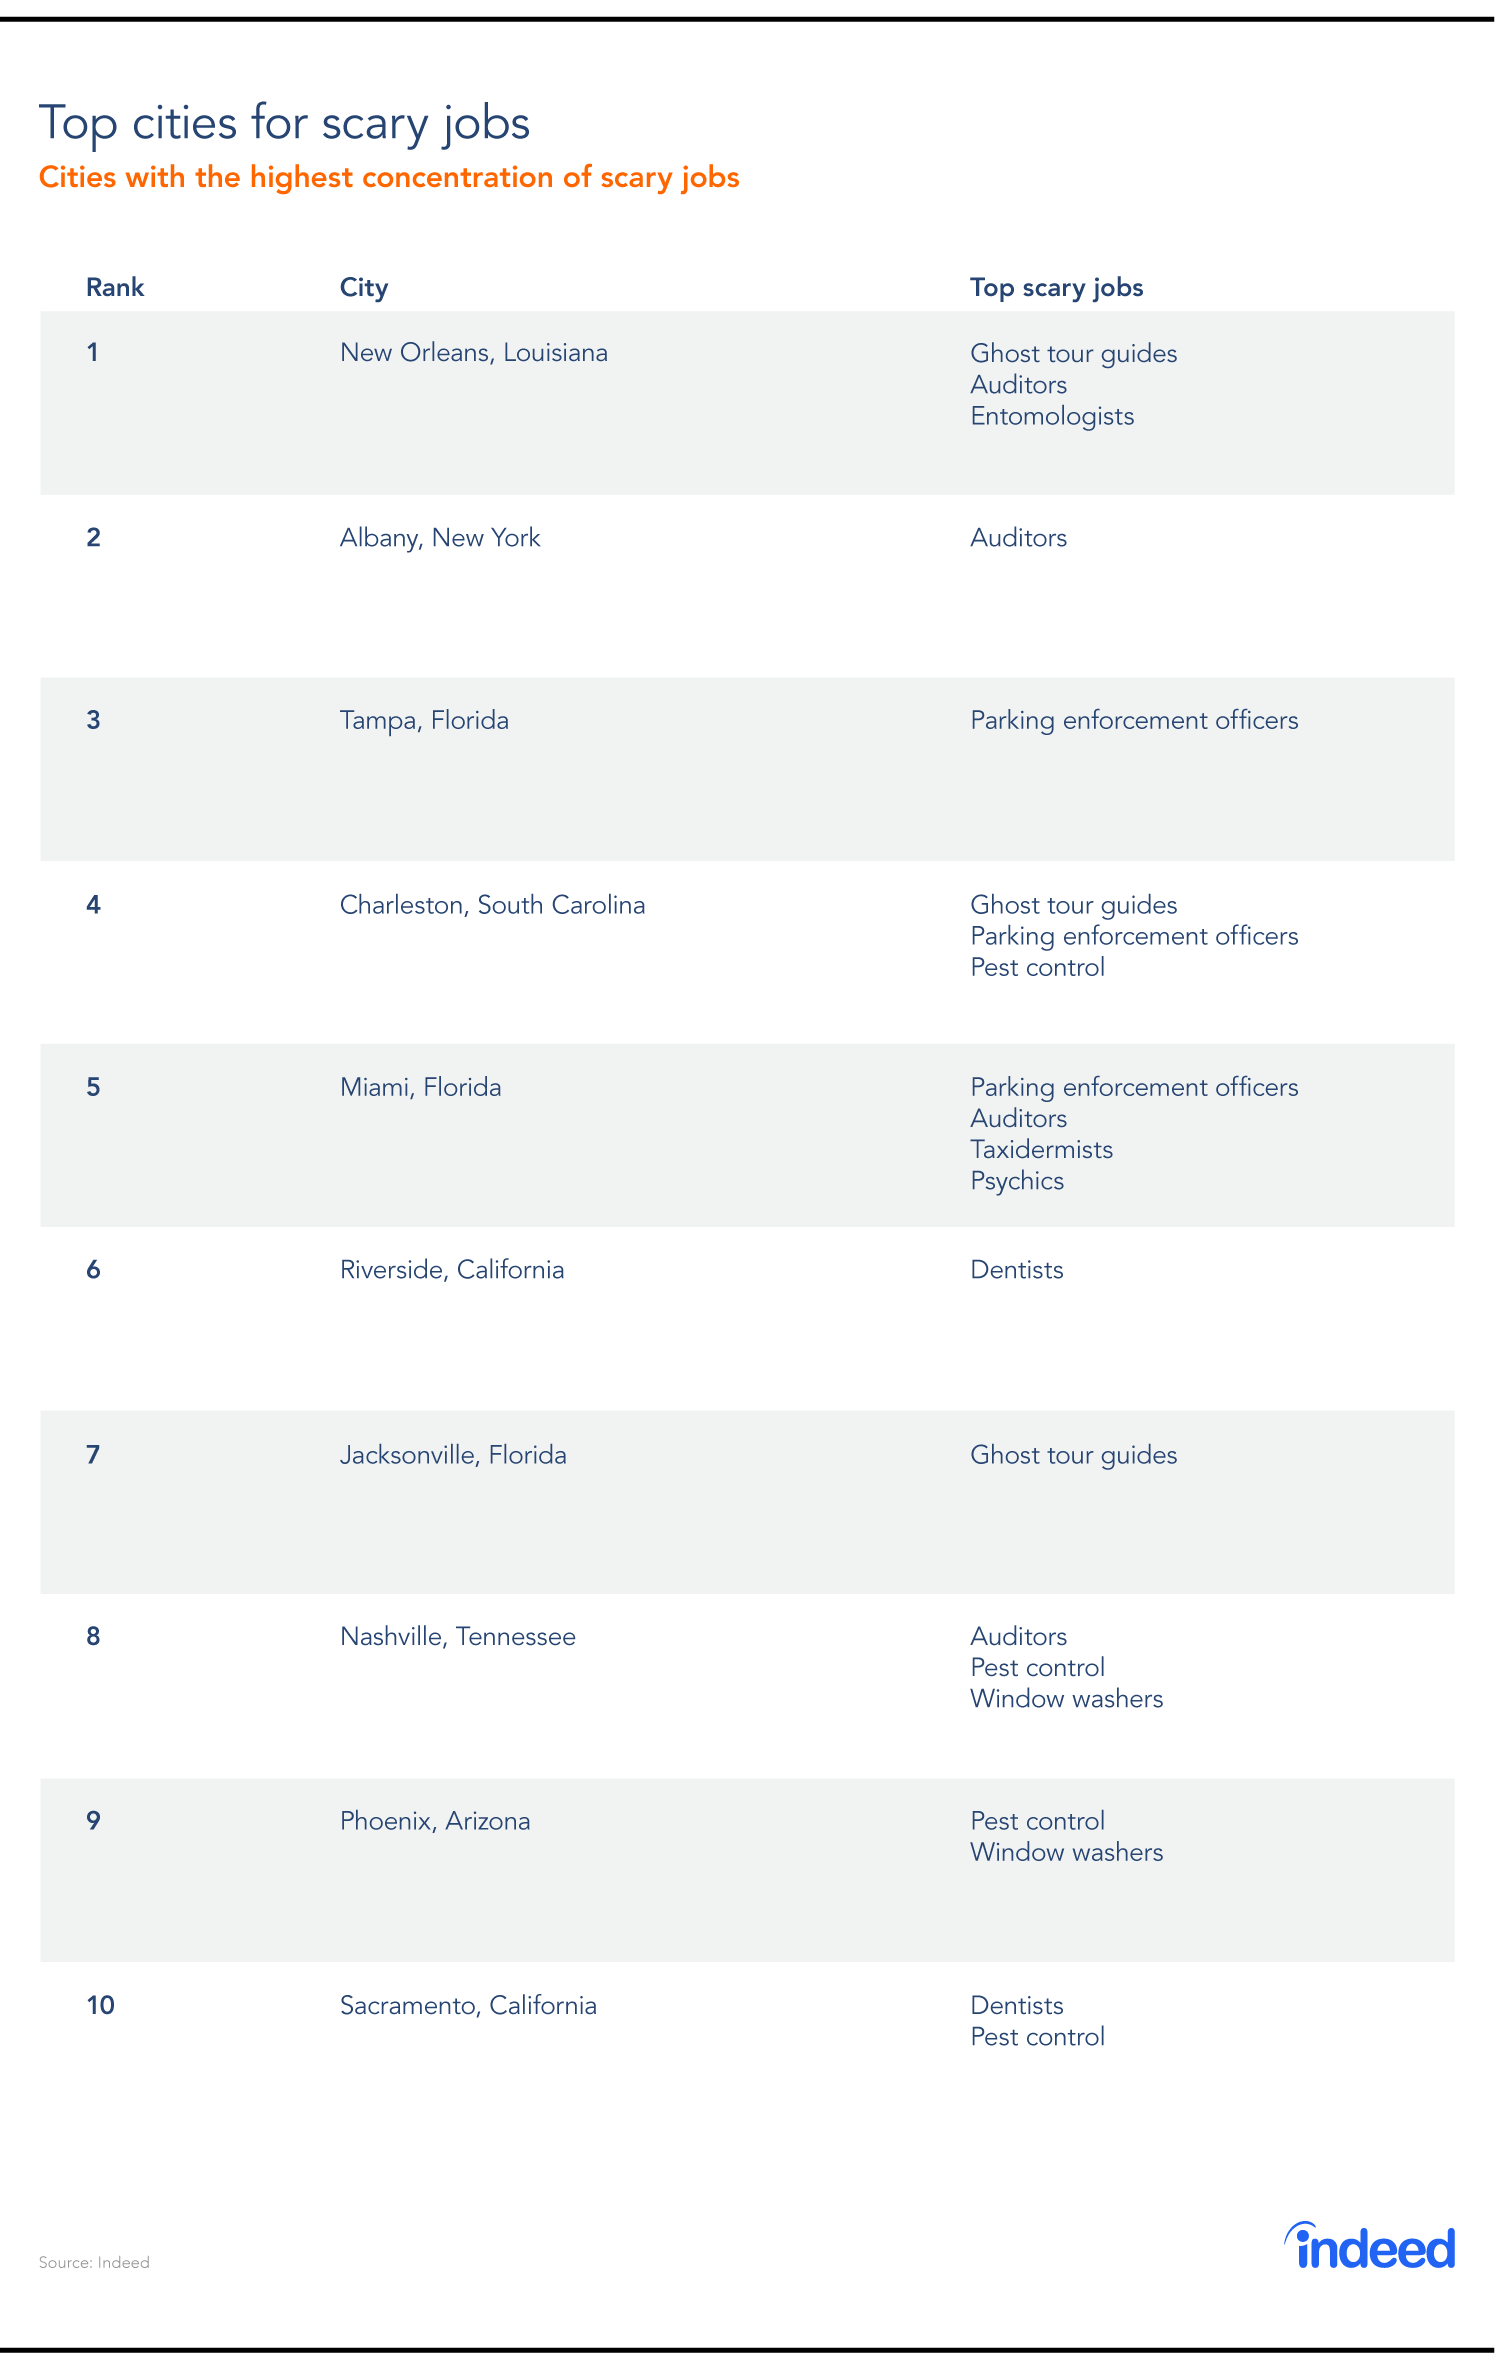 Table featuring the top 10 cities for scary jobs in the United States.